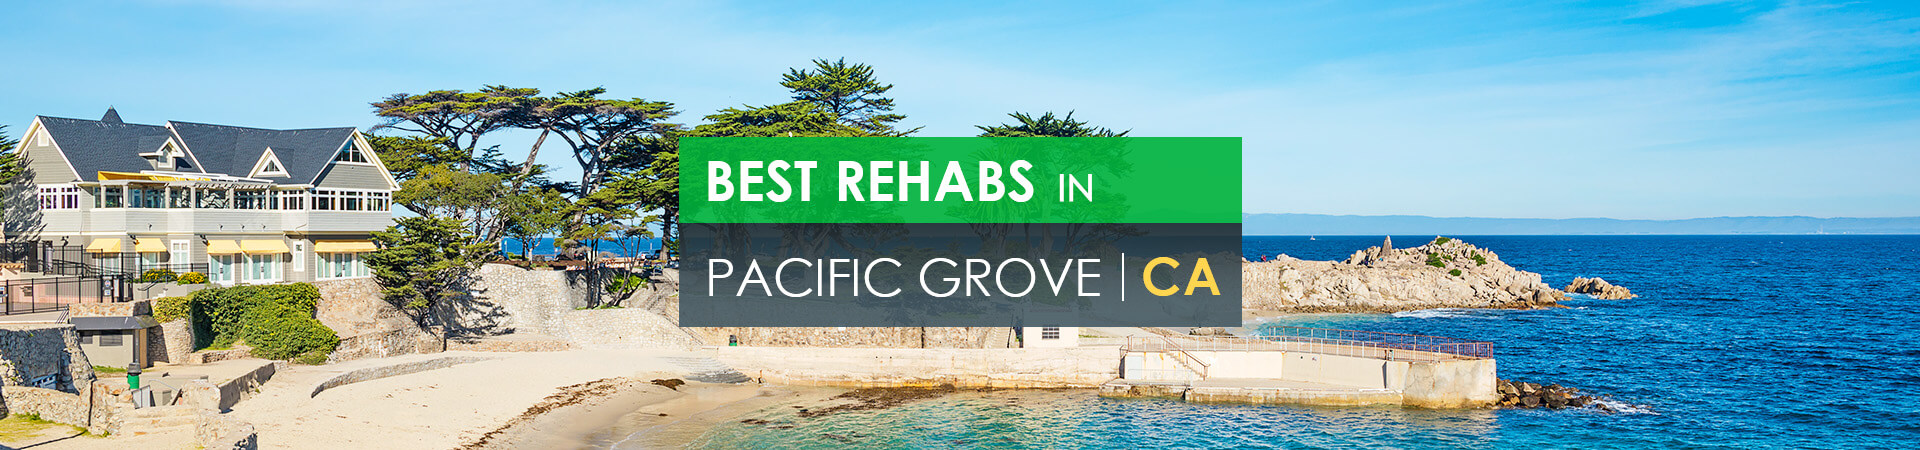 Best rehabs in Pacific Grove, CA